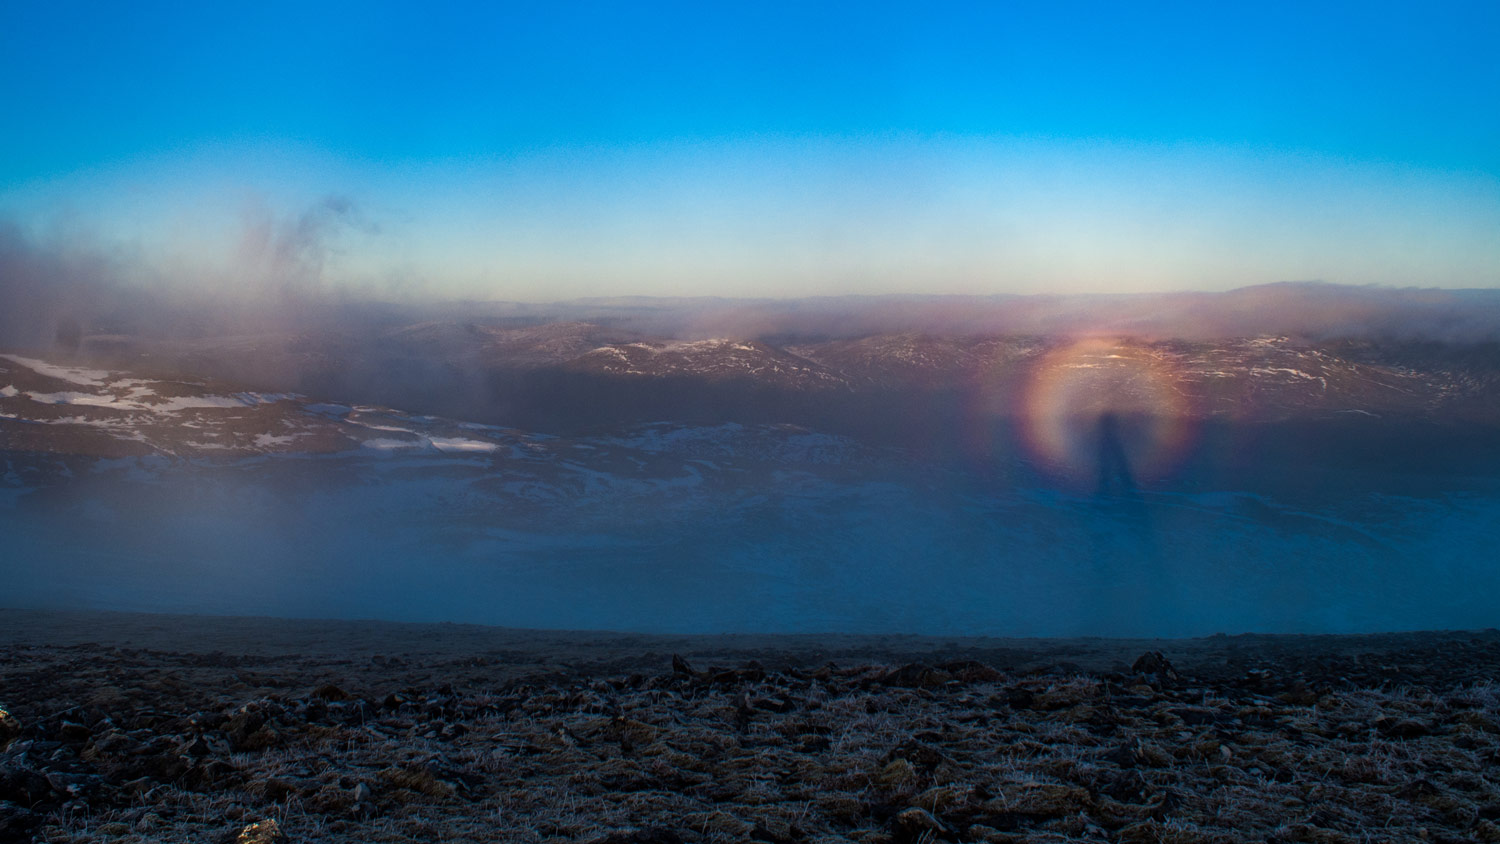 My first Brocken spectre was a sight I'll never forget.